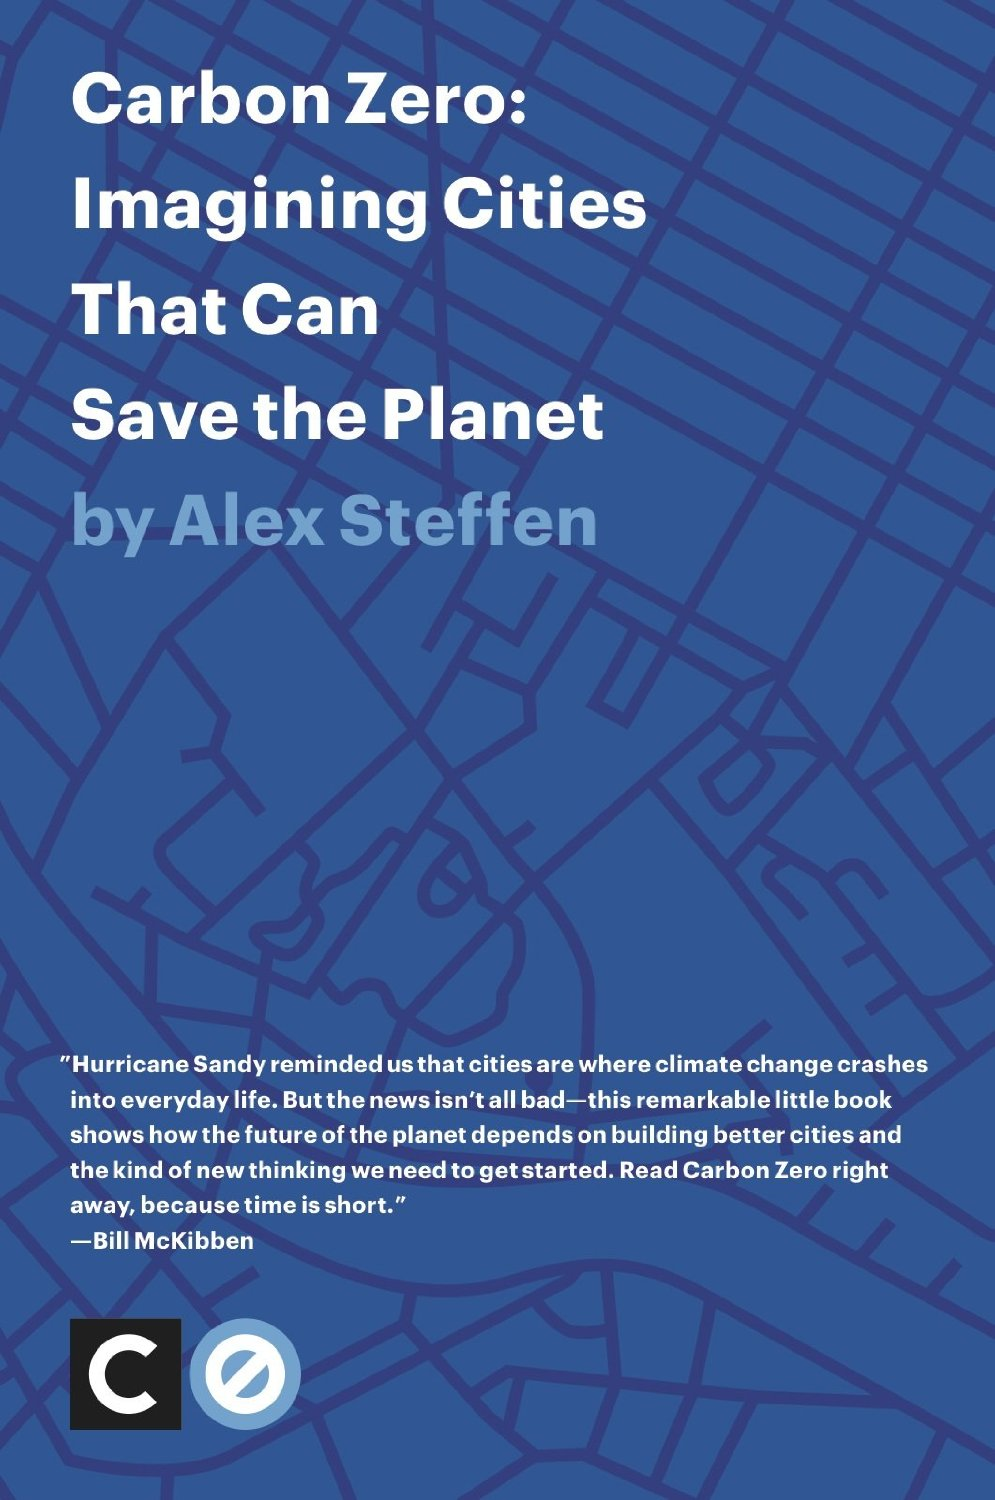 Carbon Zero: Imagining Cities That Can save the Planet.